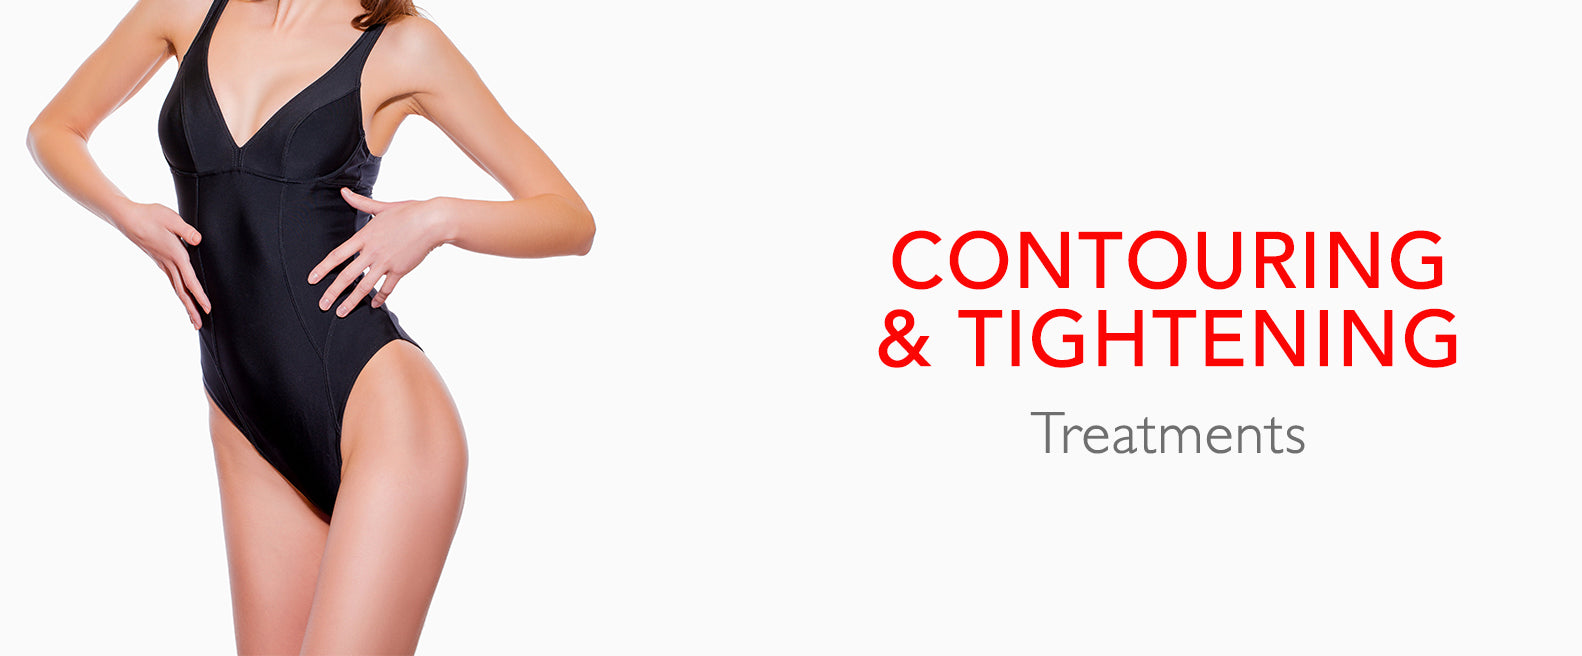 Body Contouring and Tightening